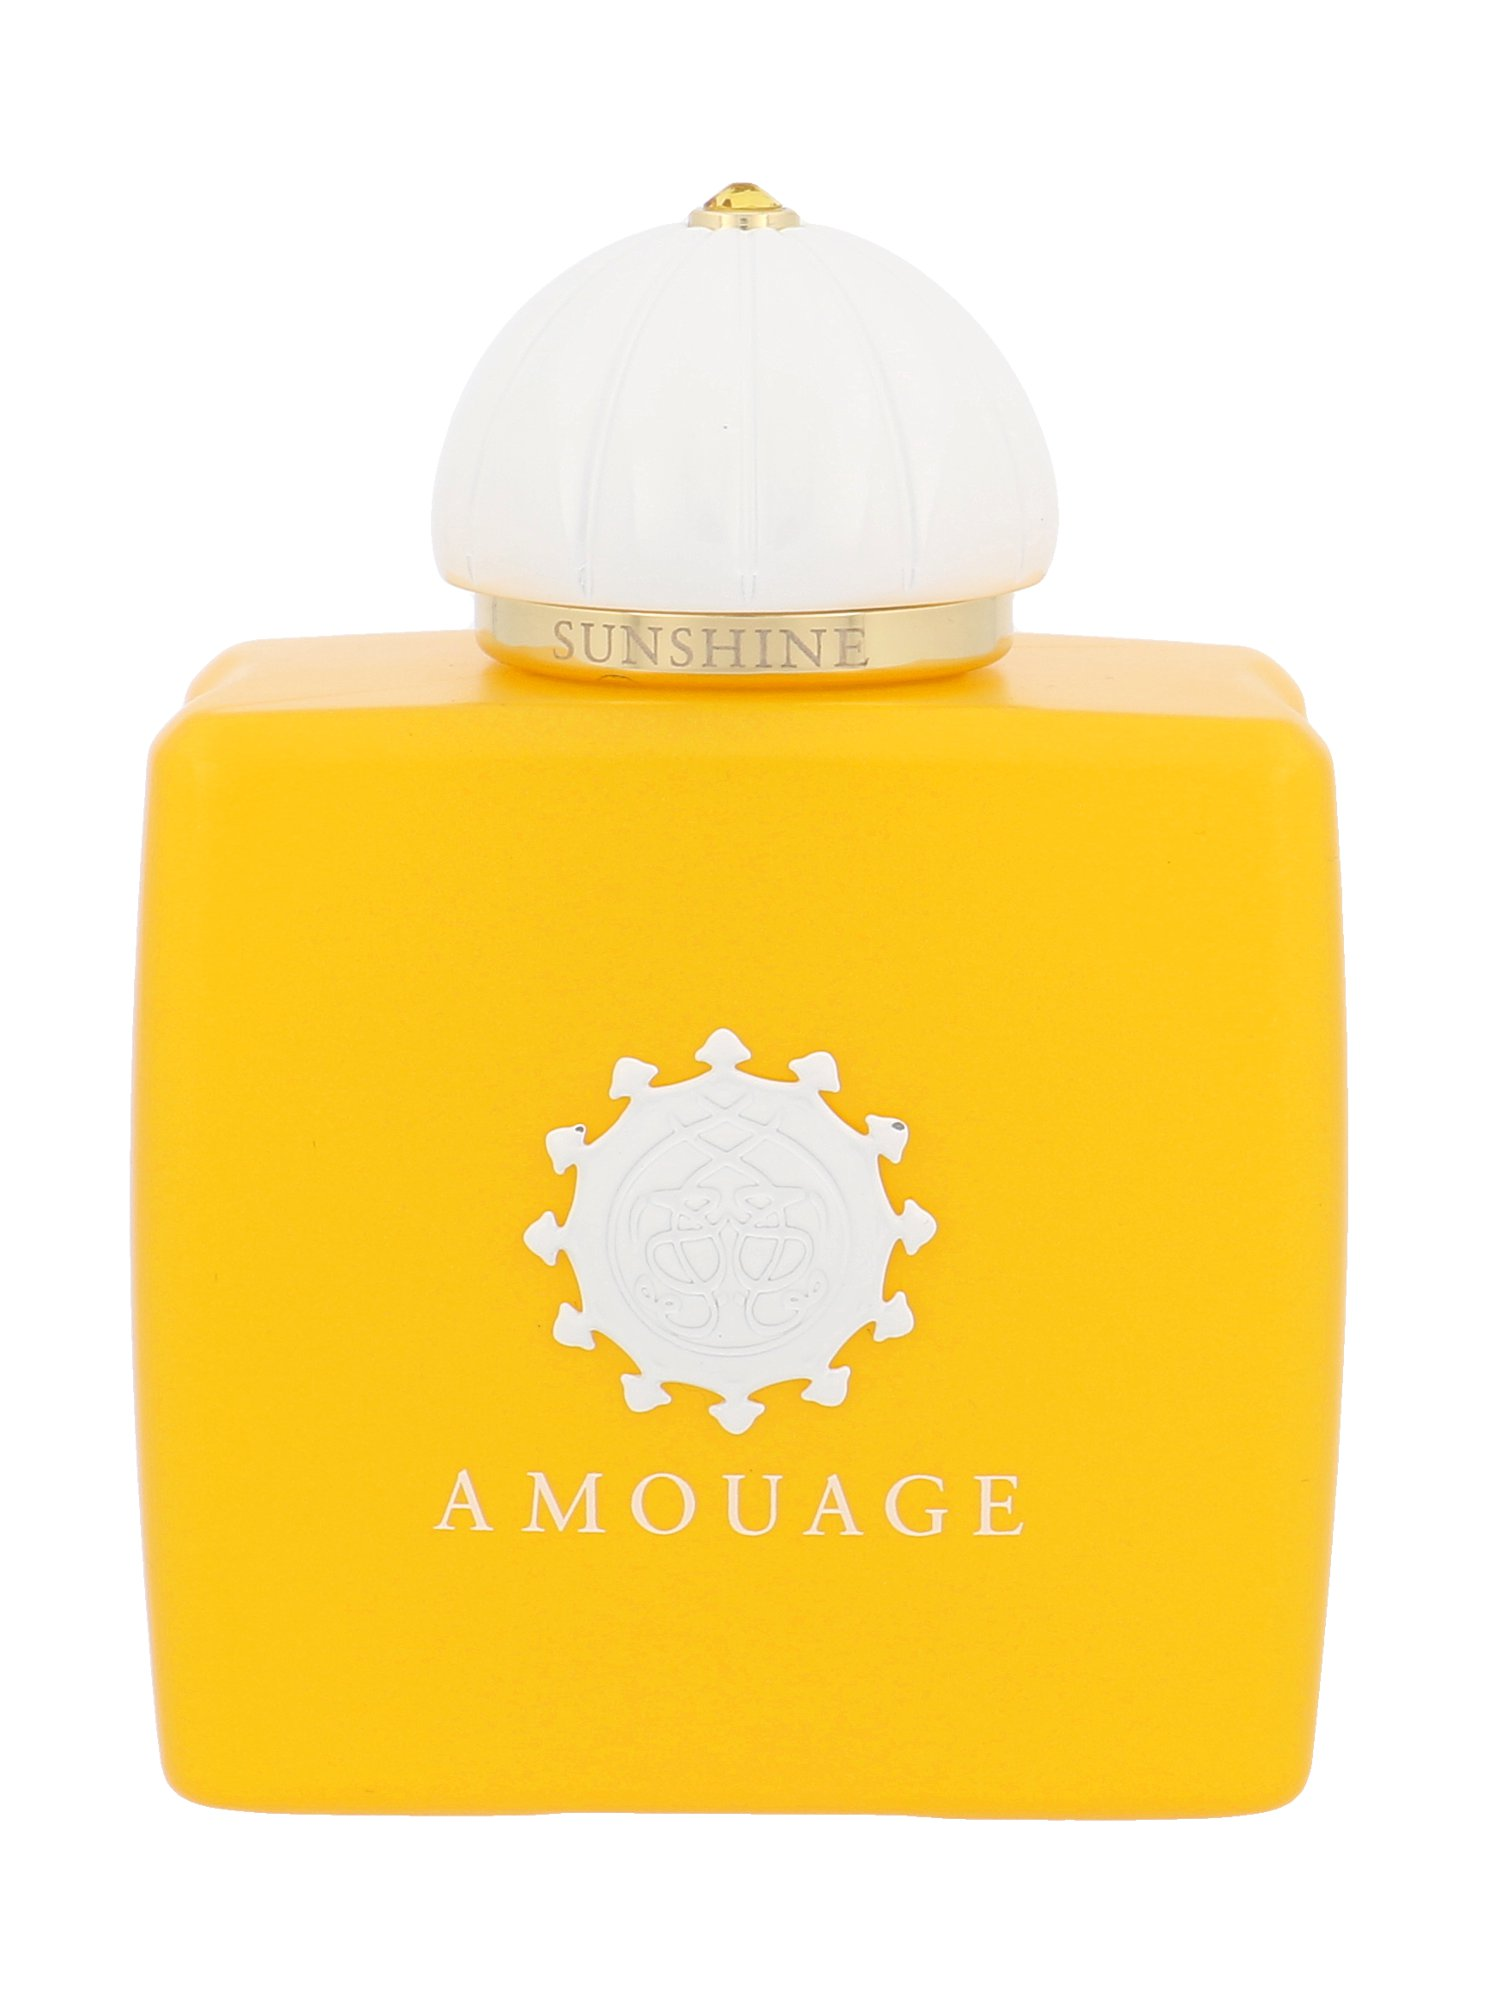 Amouage Sunshine, Parfumovaná voda 100ml